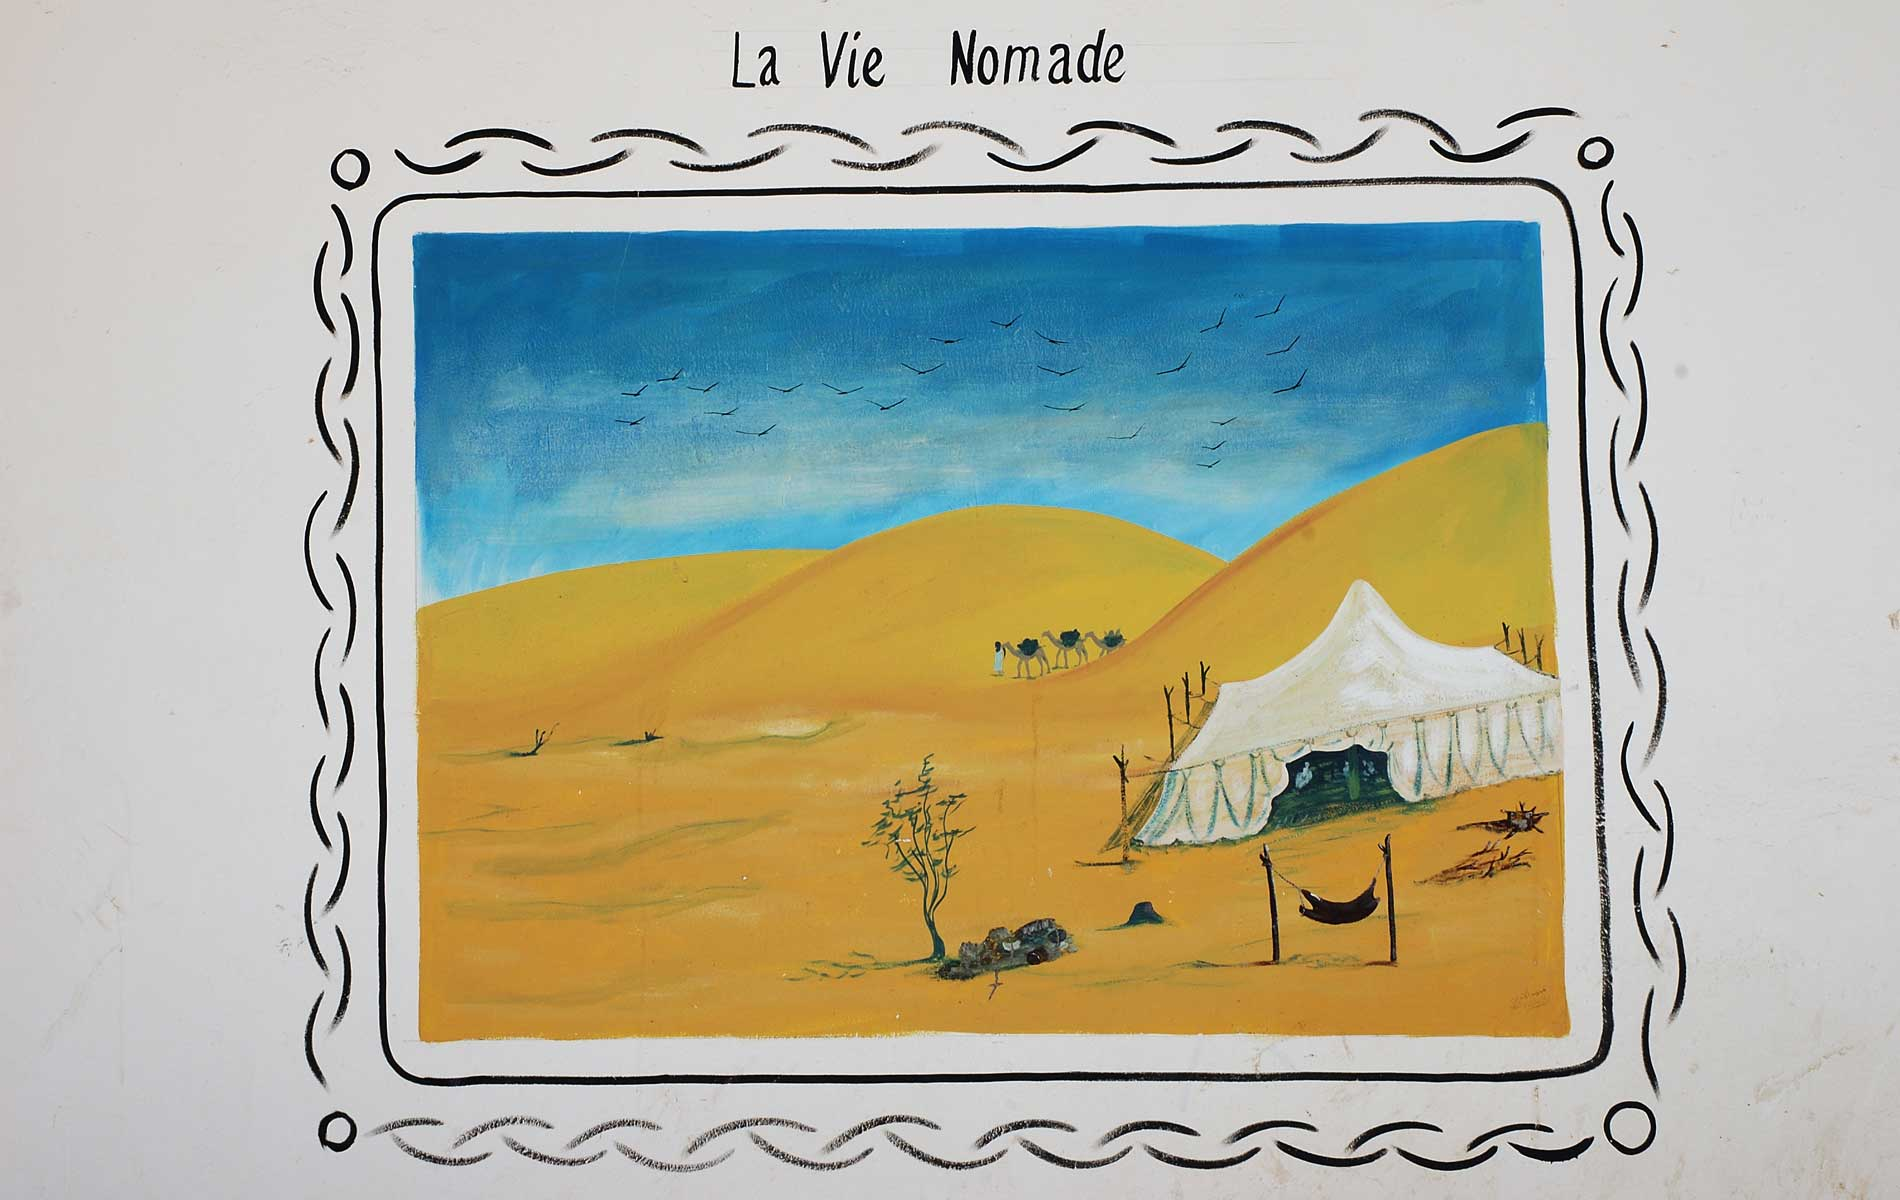 MAURITANIA - the sign of the way of the nomads - © Graziano Villa